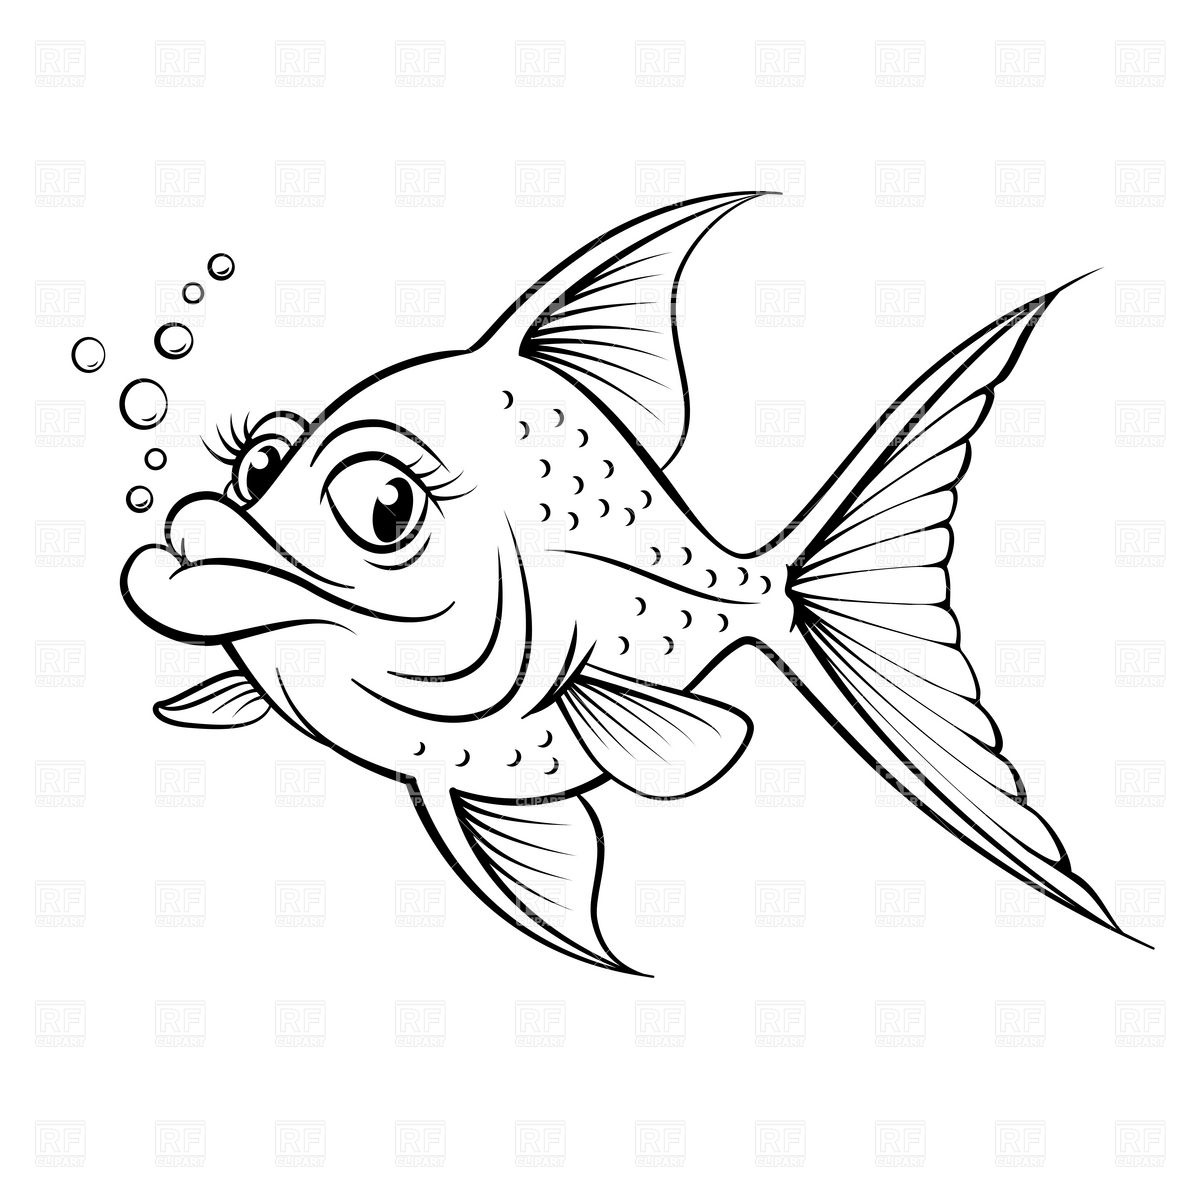 1200x1200 Sketch Of Cartoon Fish Outline Royalty Free Vector Clip Art Image